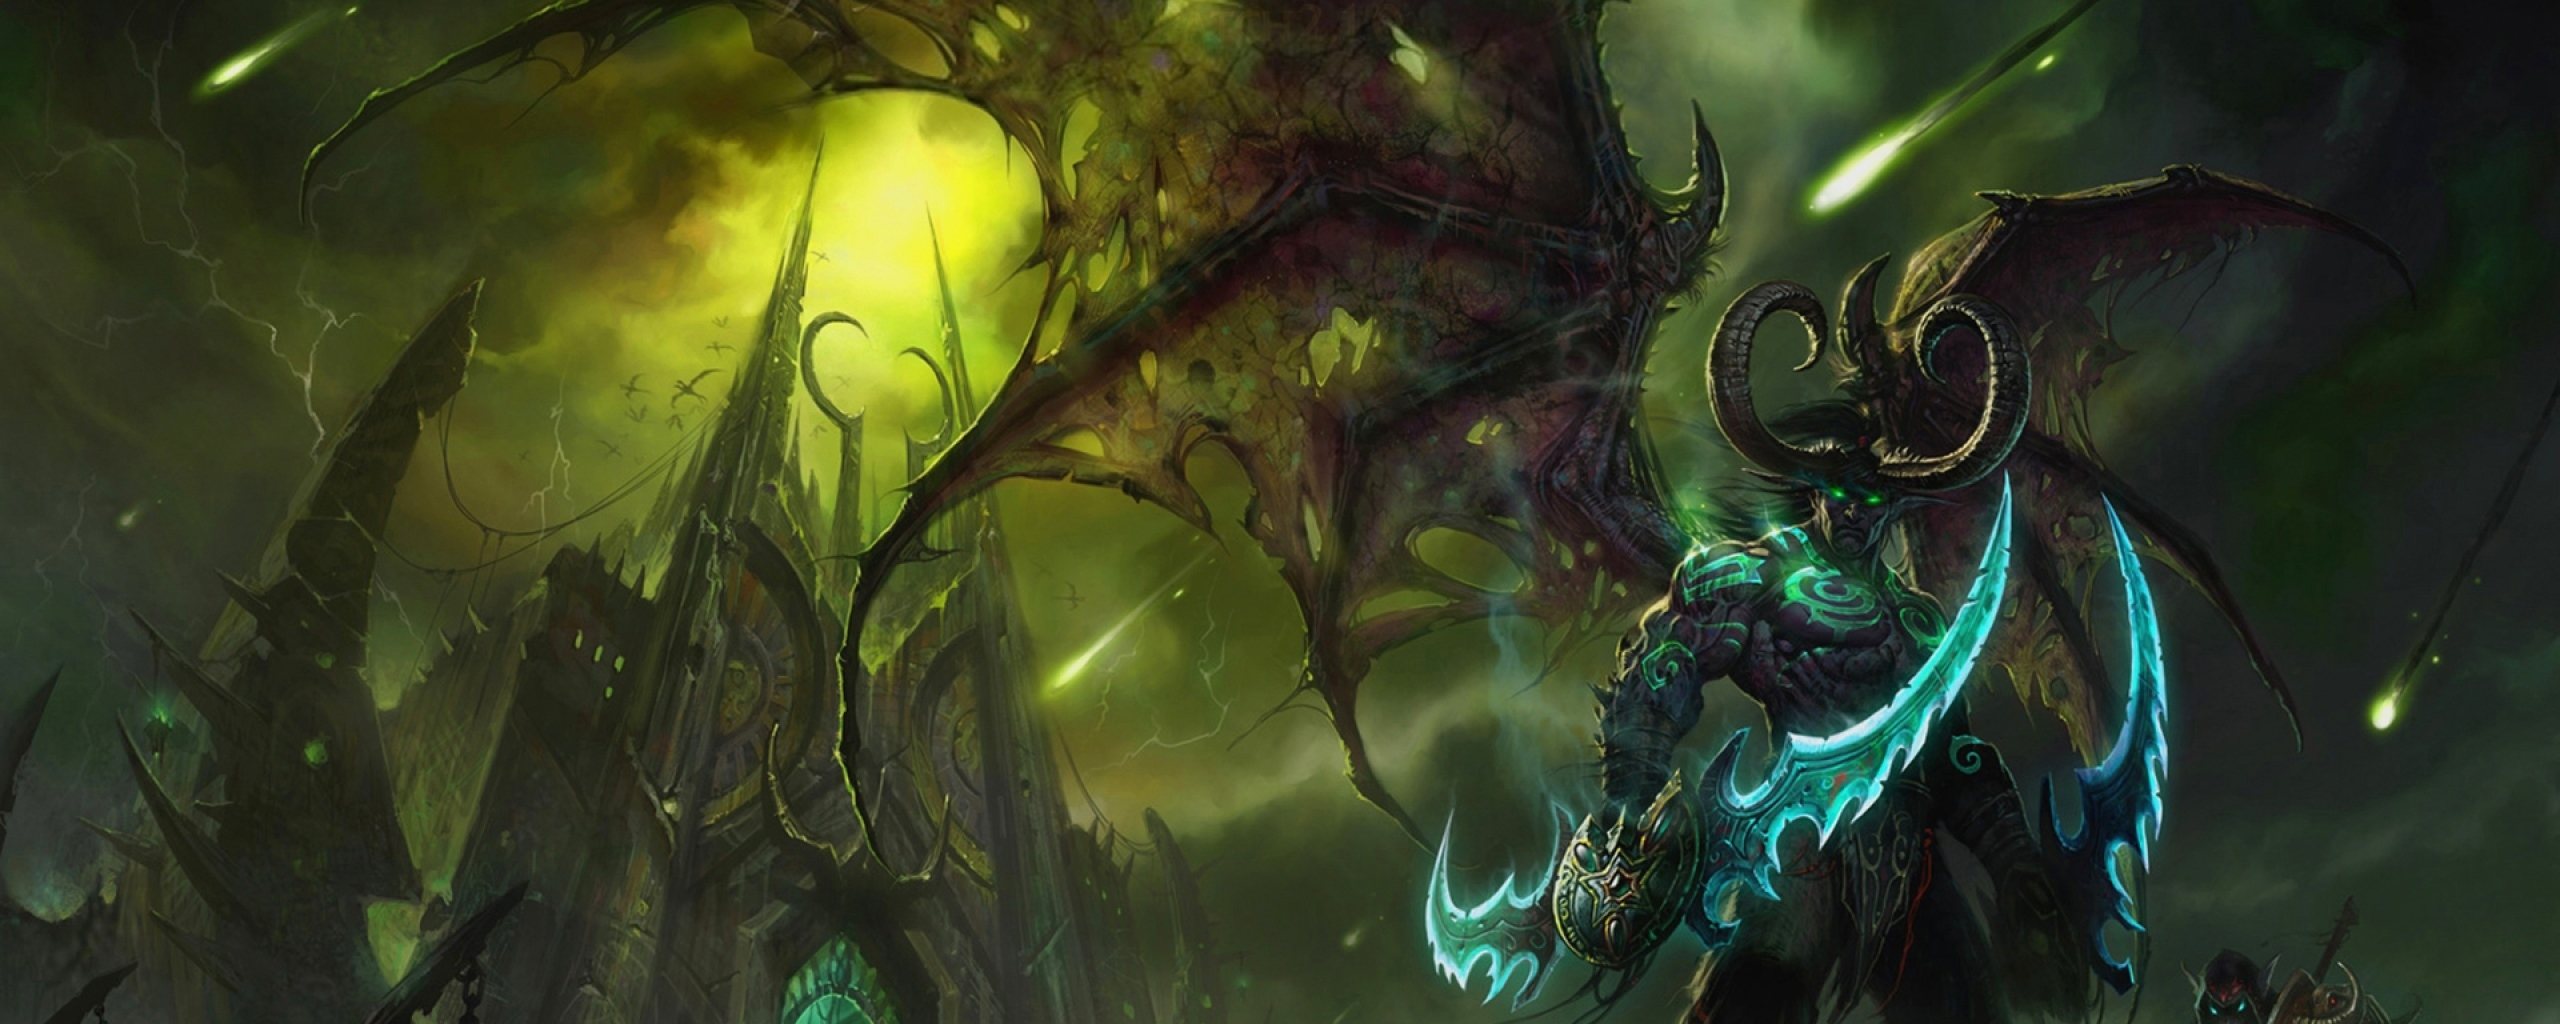 73 Illidan Wallpapers On Wallpapersafari